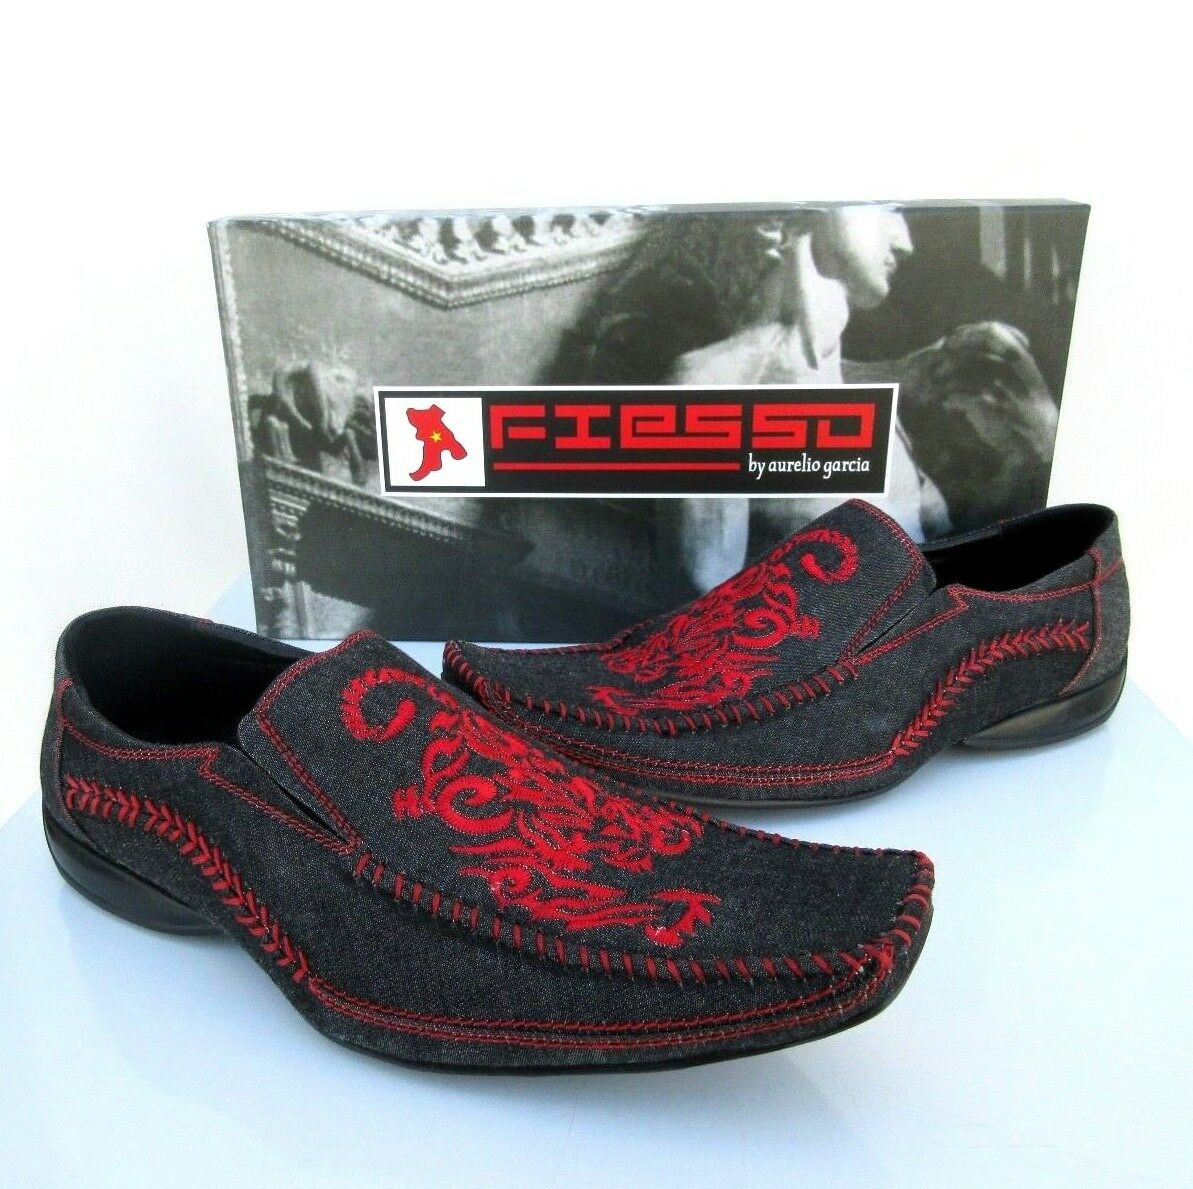 NEW Fiesso Aurelio Garcia Mens Black Style Red Tiger Loafer Shoes Style Black FI-8117 Sz 9 82a301